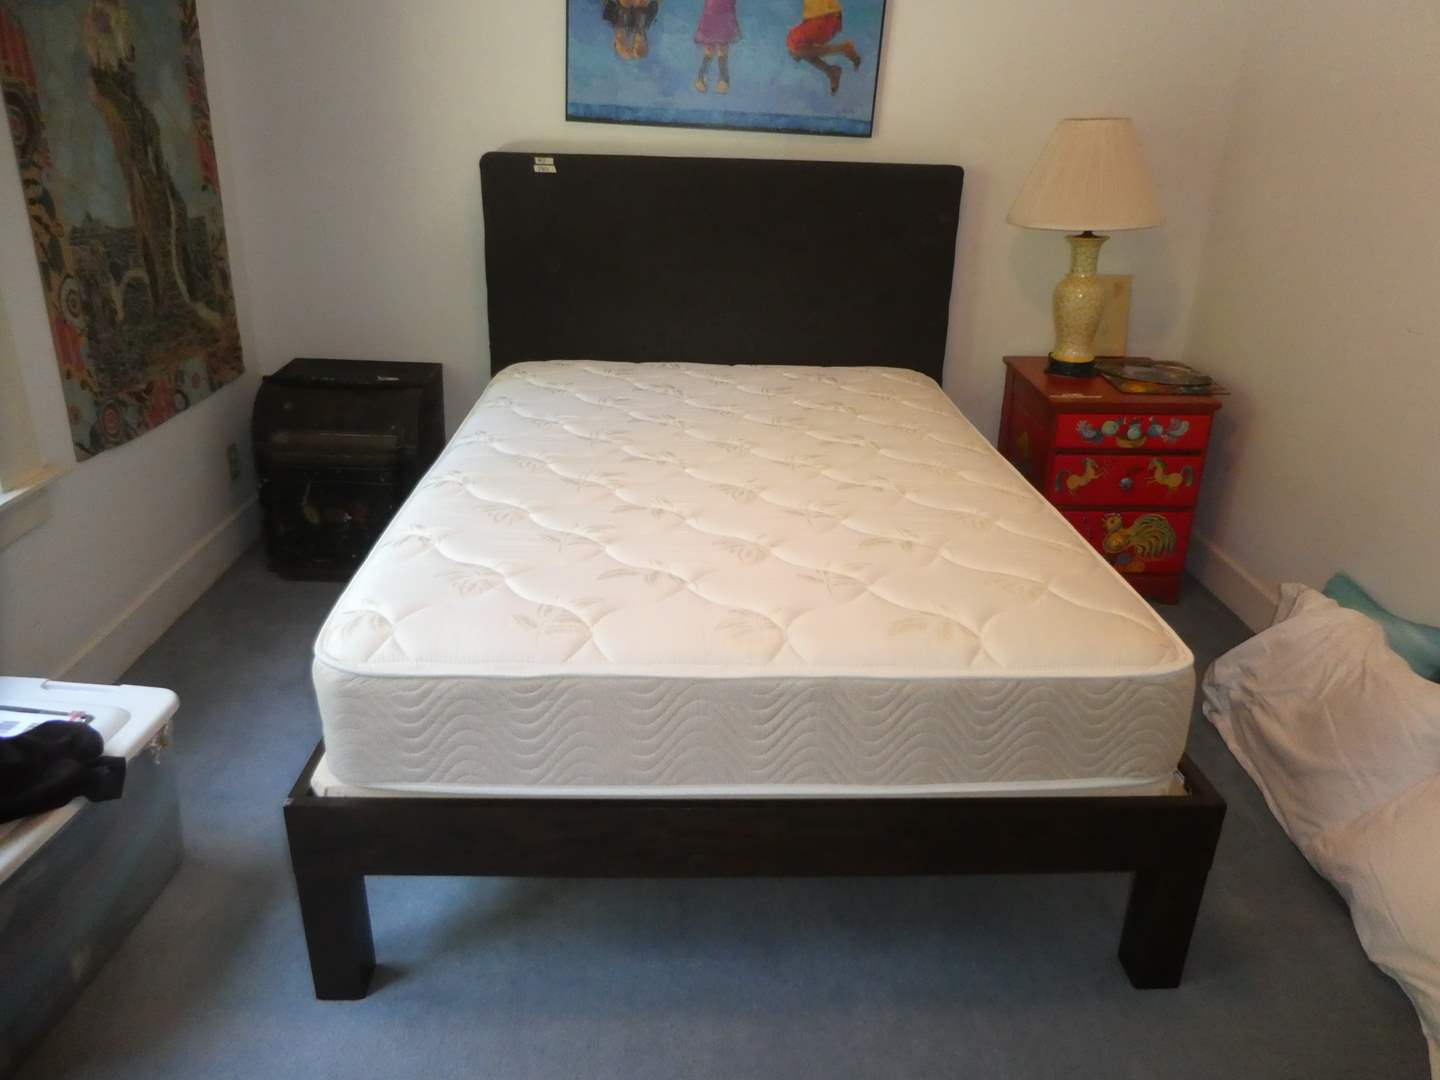 Lot # 5 - Nice Clean Mattress and Box Spring w/ Fame, Upholstered Headboard and Bedding(Located Upstairs Please Bring Help) (main image)